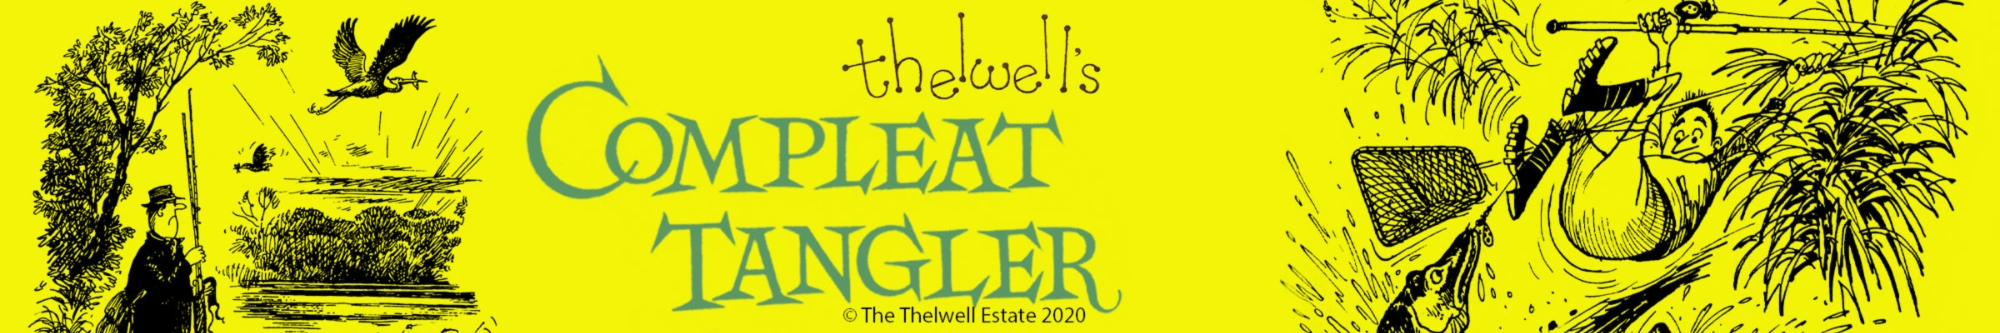 Showroom - Thelwells Compleat Tangler